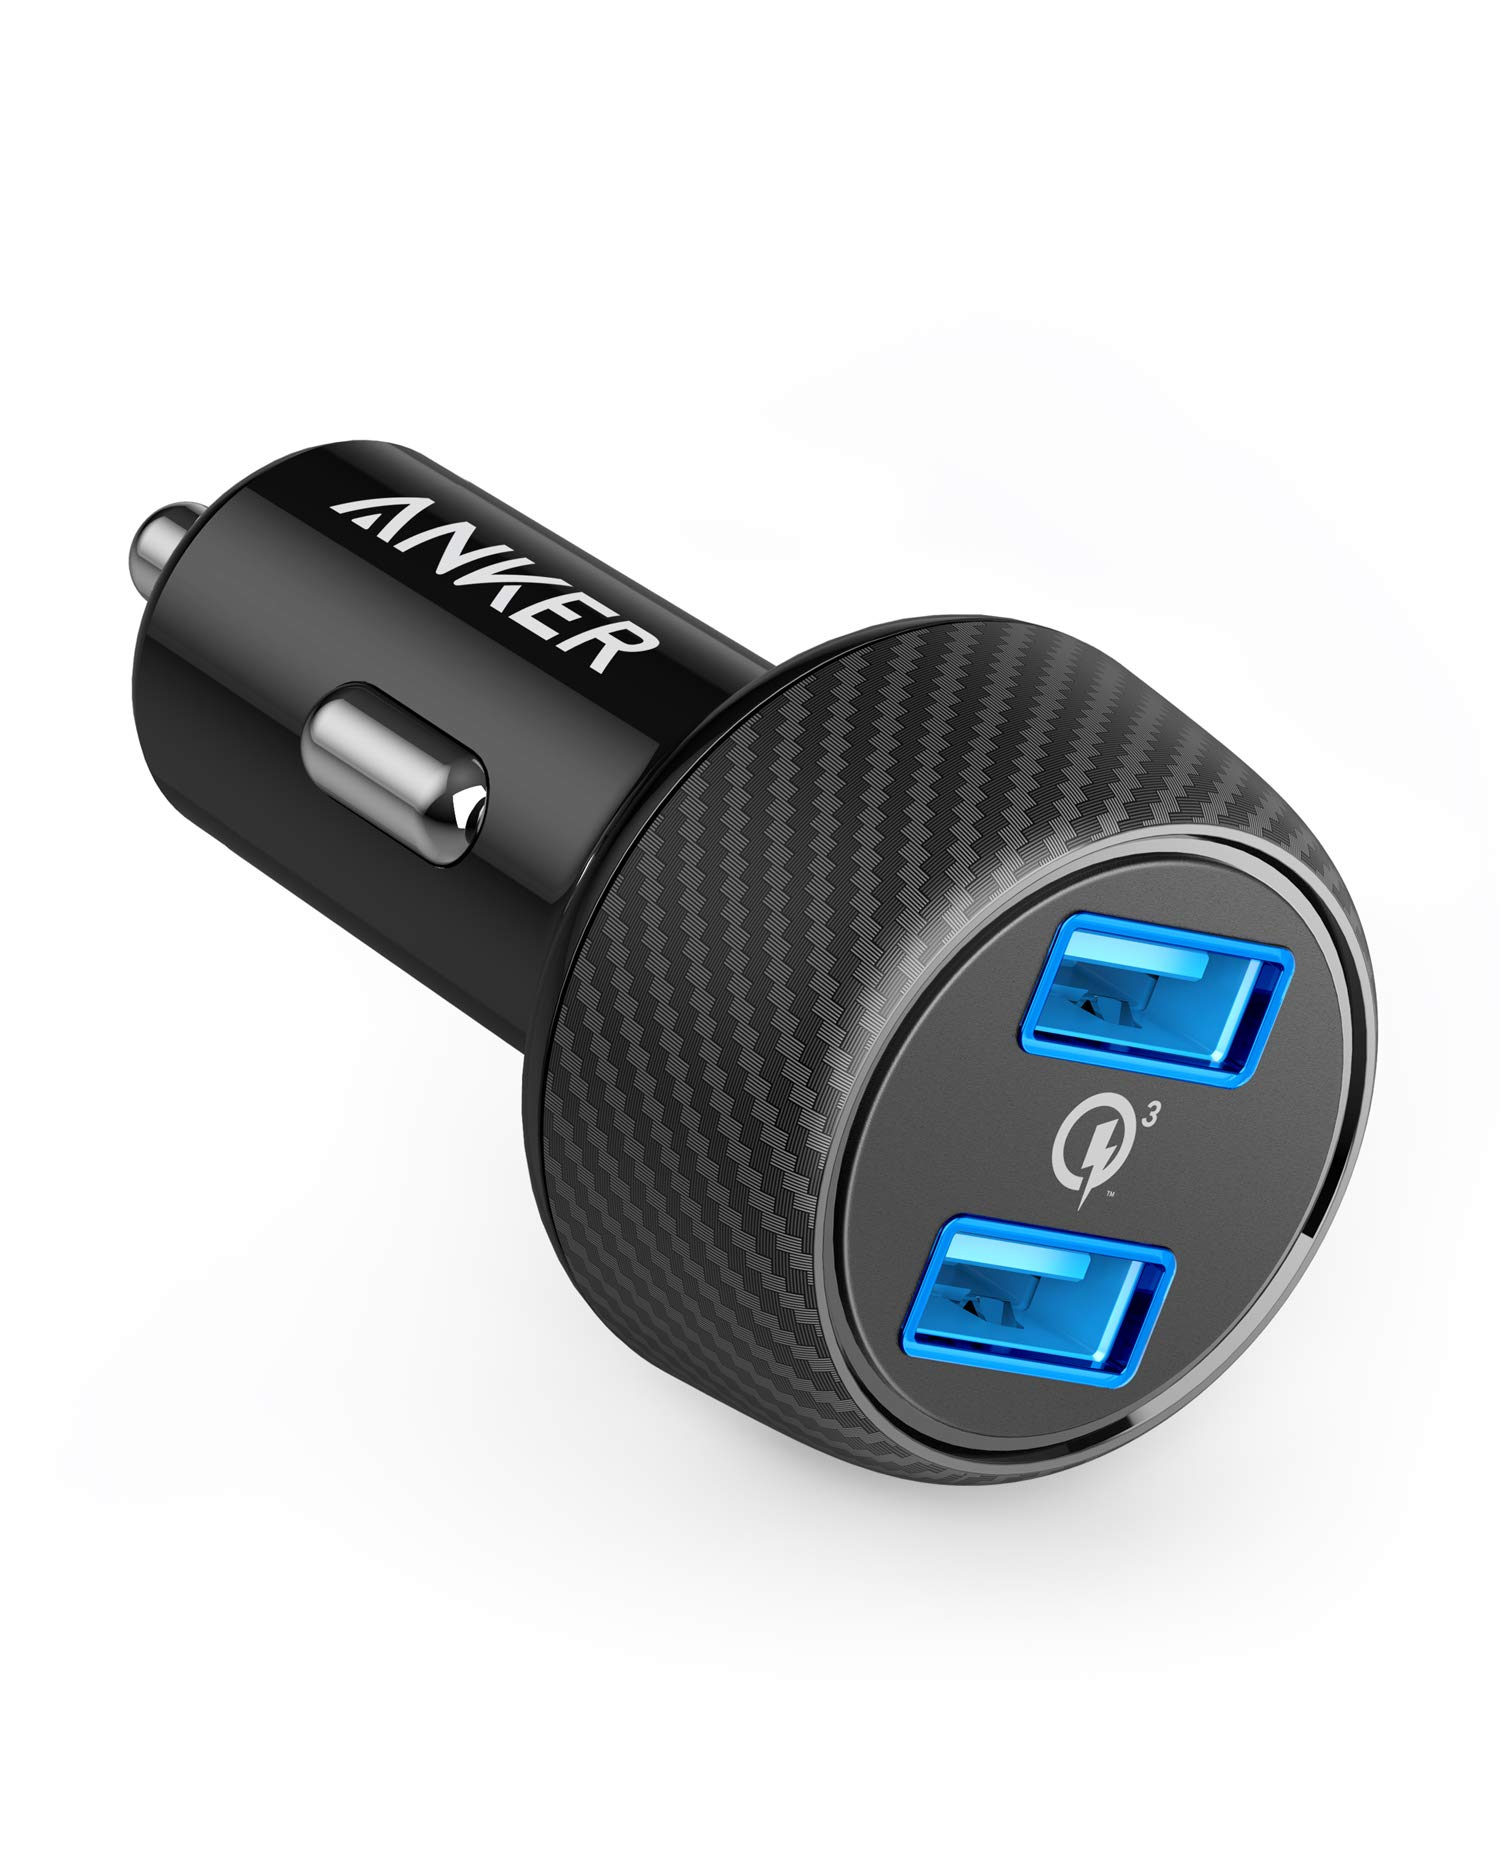 Anker Quick Charger 3.0 39W Dual USB Car Charger